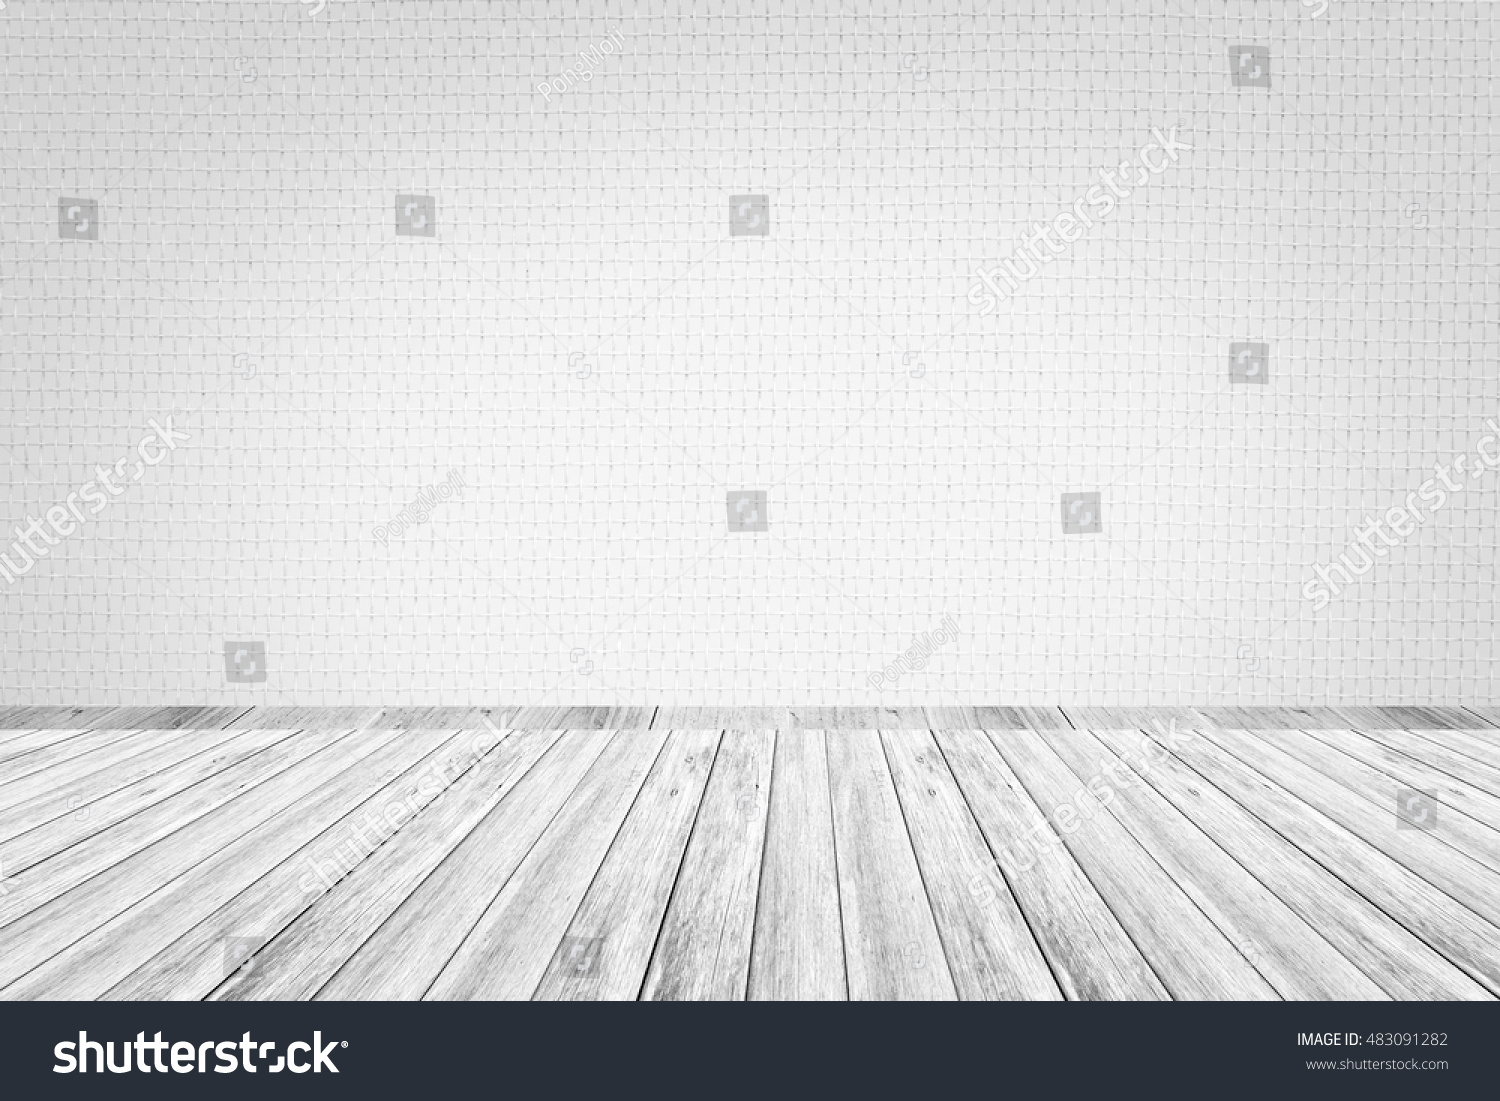 Wood terrace wallpaper interior texture background stock for Terrace texture